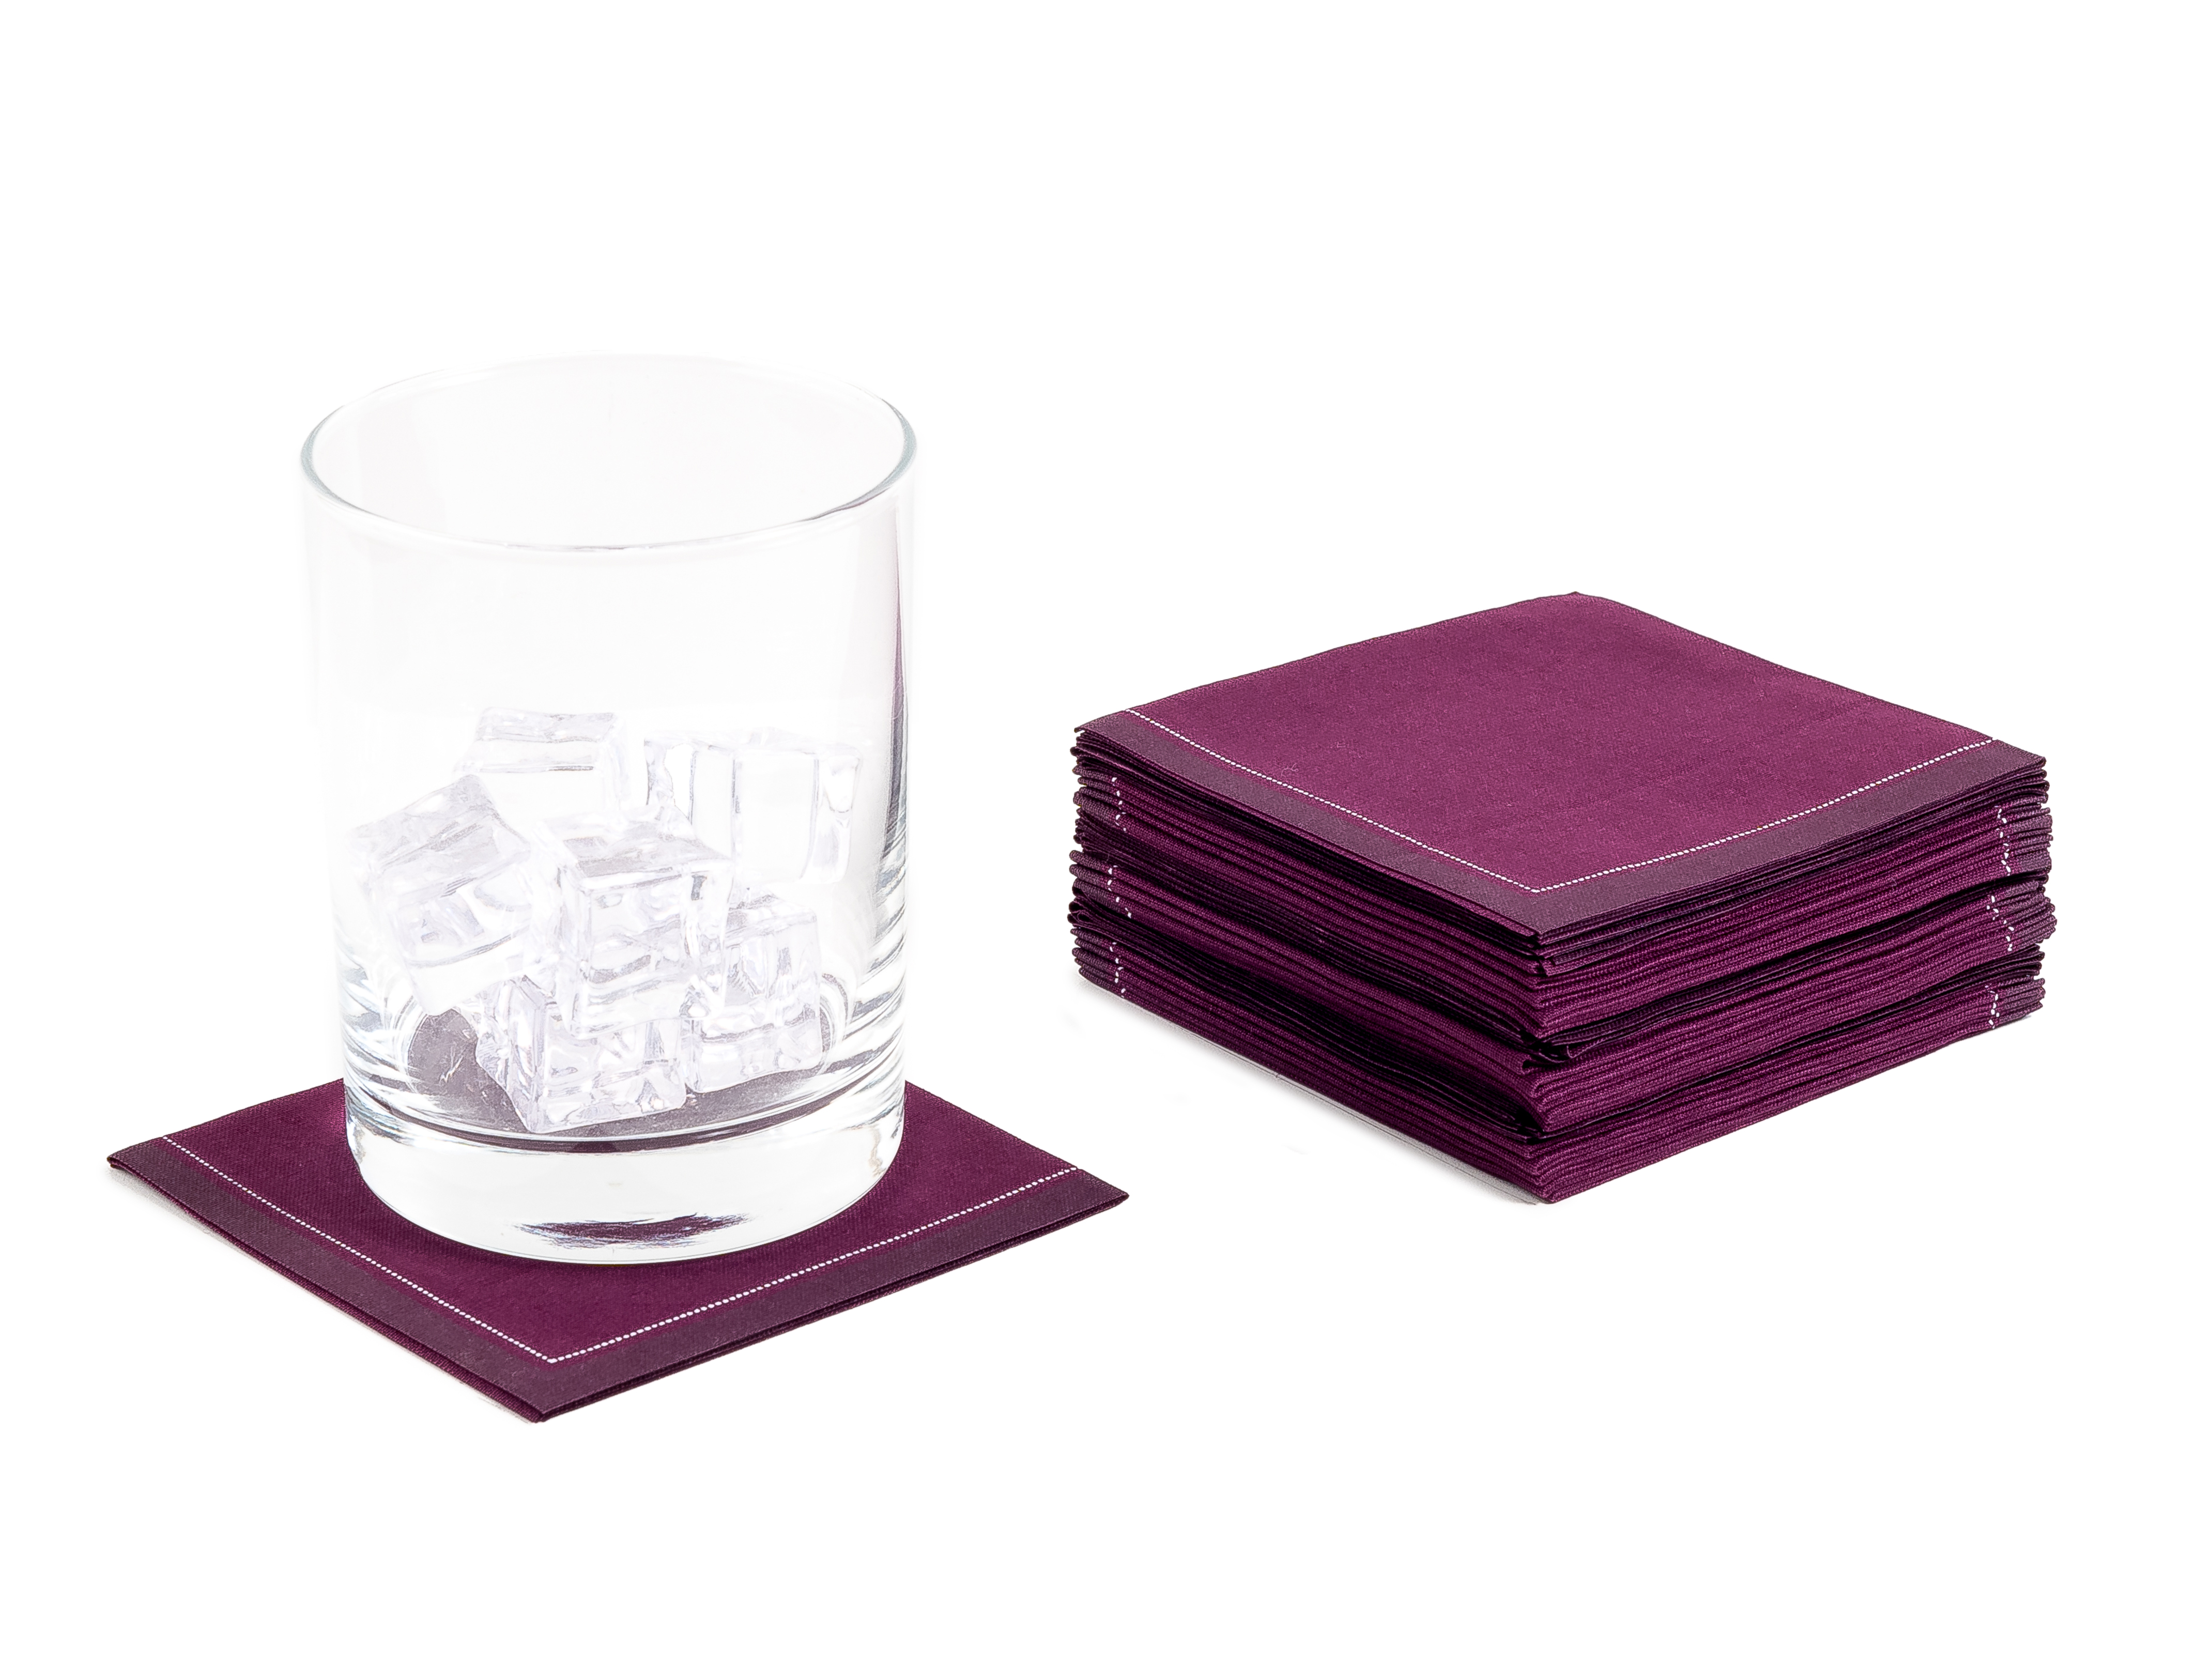 """Pickled Beet Cotton 1/4 Fold Cocktail - 8"""" x 8"""" (folded 4"""" x 4"""") - 30 units"""